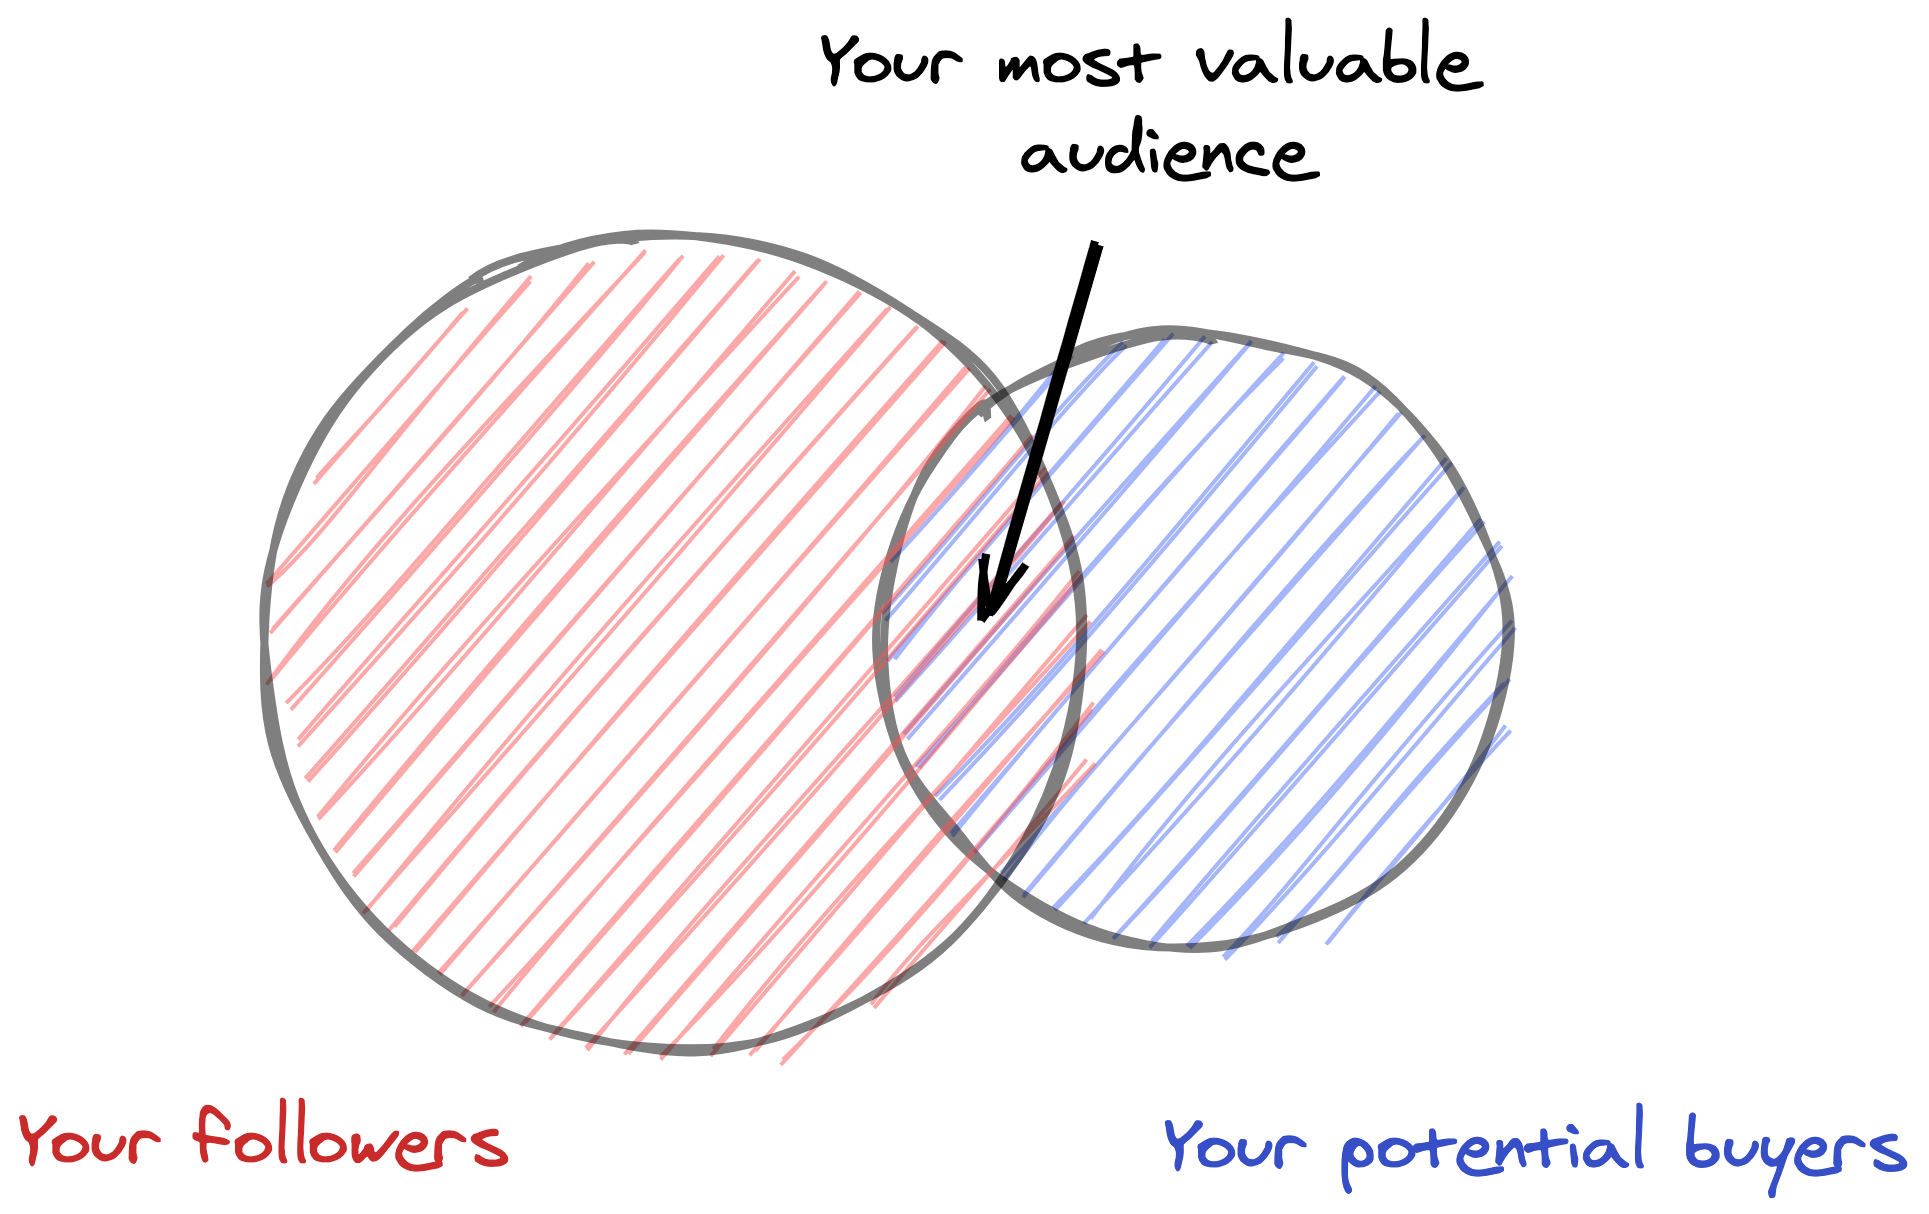 Diagram of most valuable audience